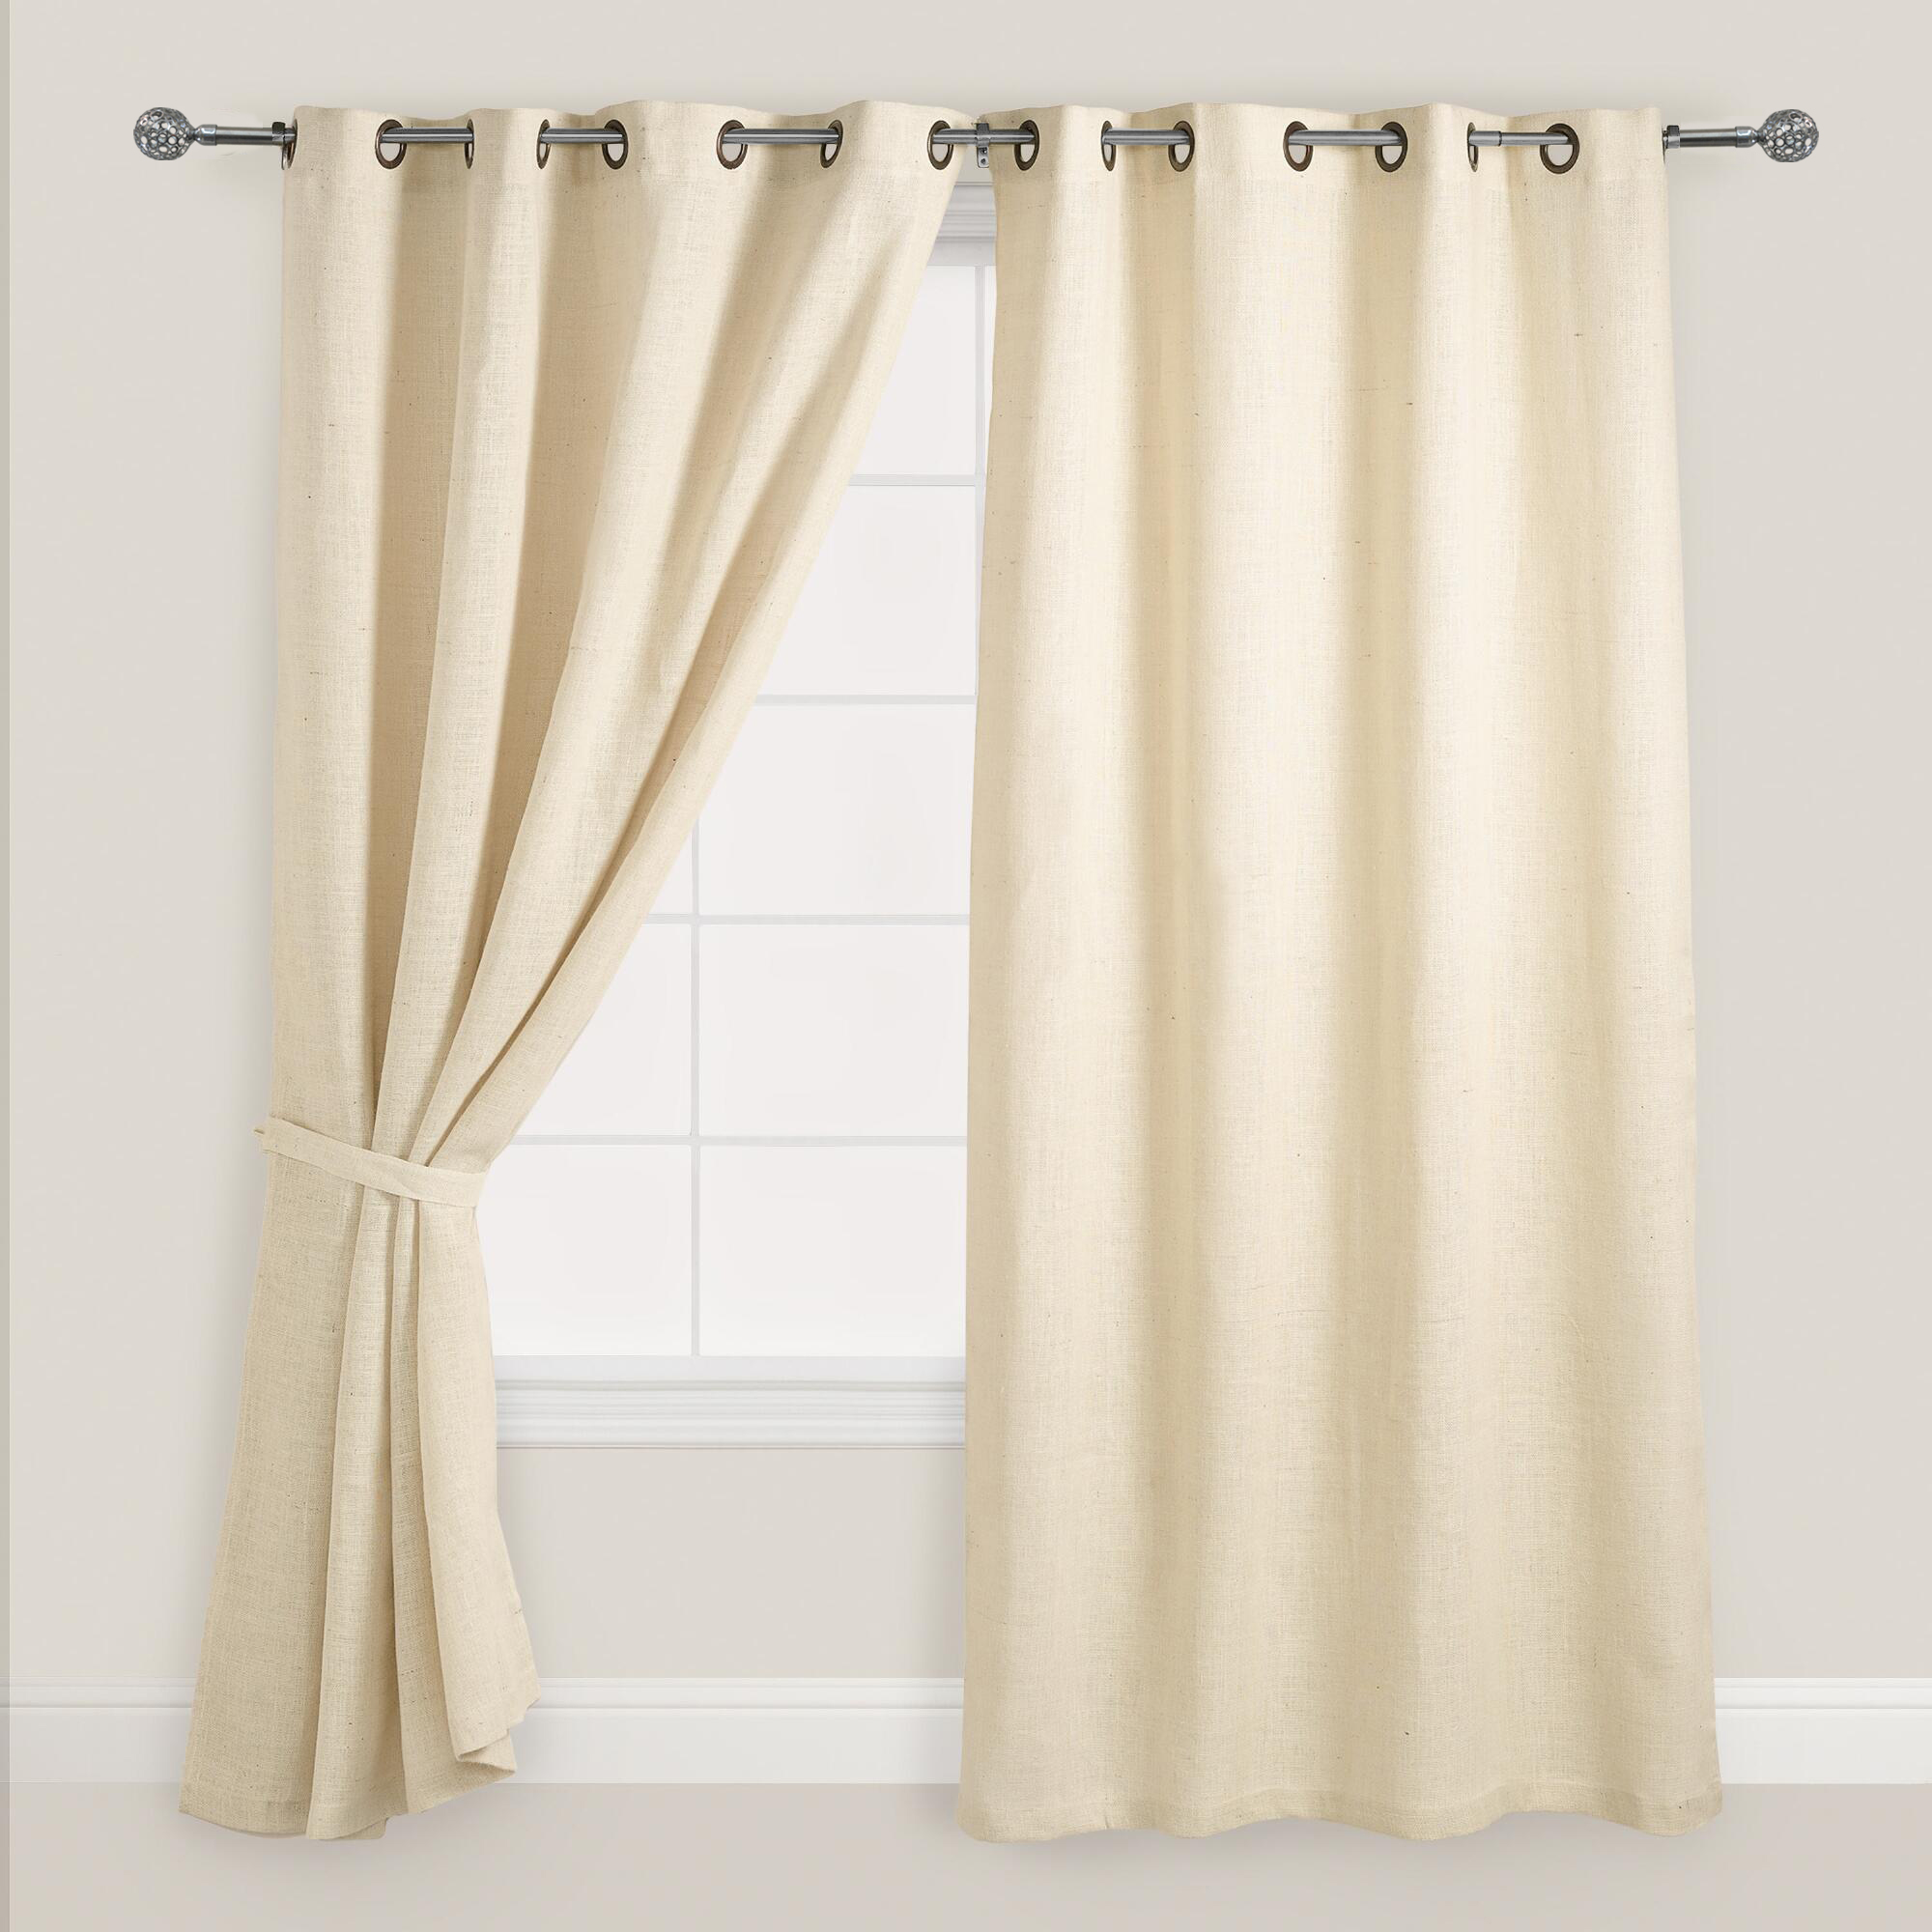 curtains shower window cafe interior decor bronze beautiful inch rods rod with kohls ideas curtain cur